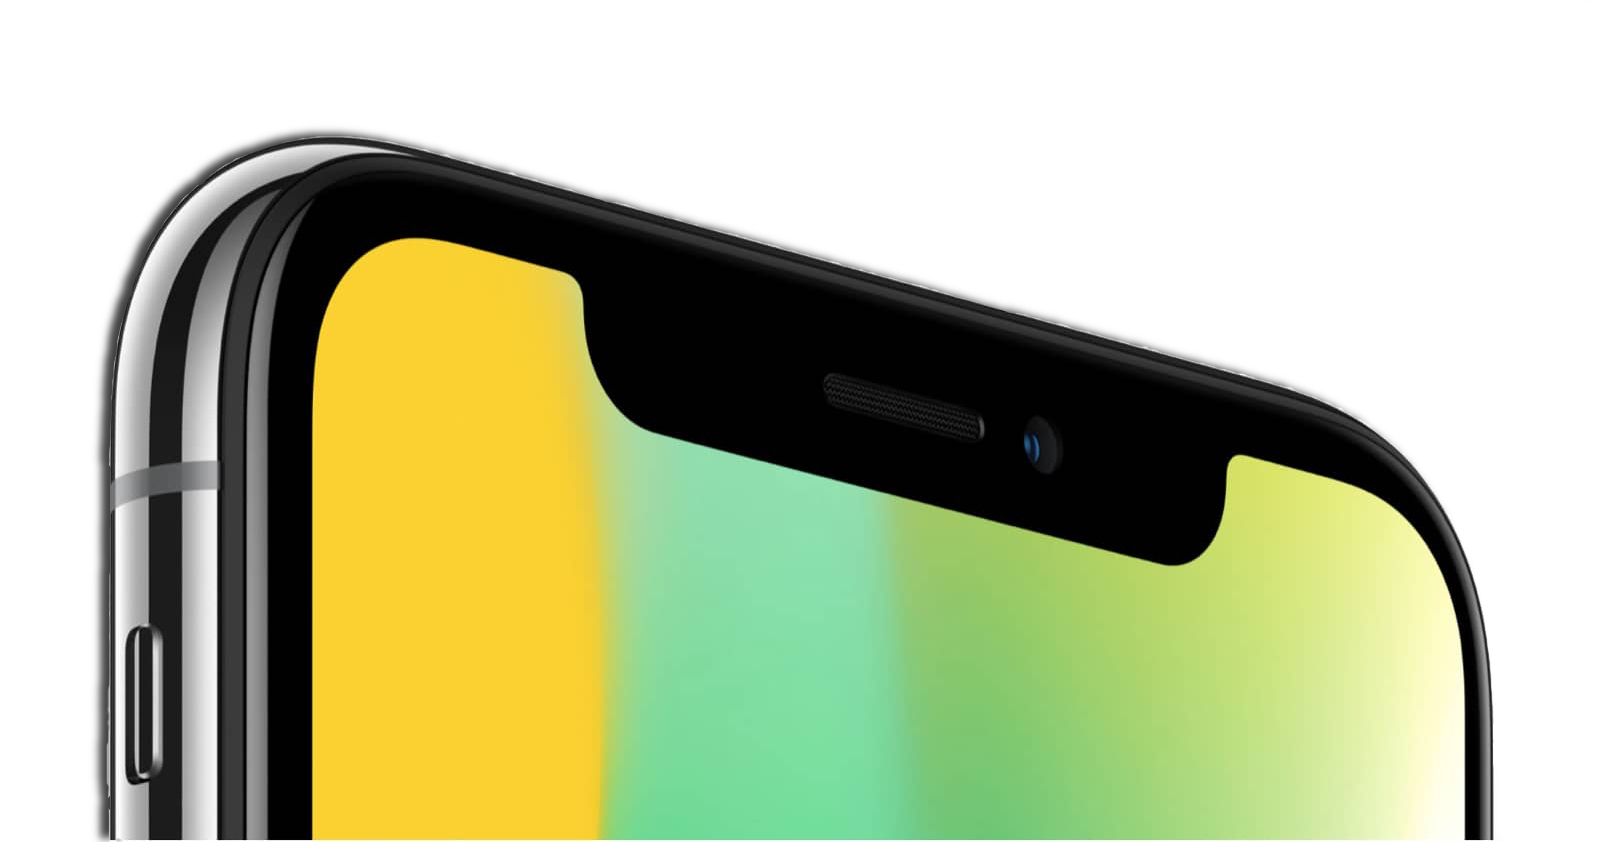 iPhone X TrueDepth front-facing camera, one of the new iPhone camera features.